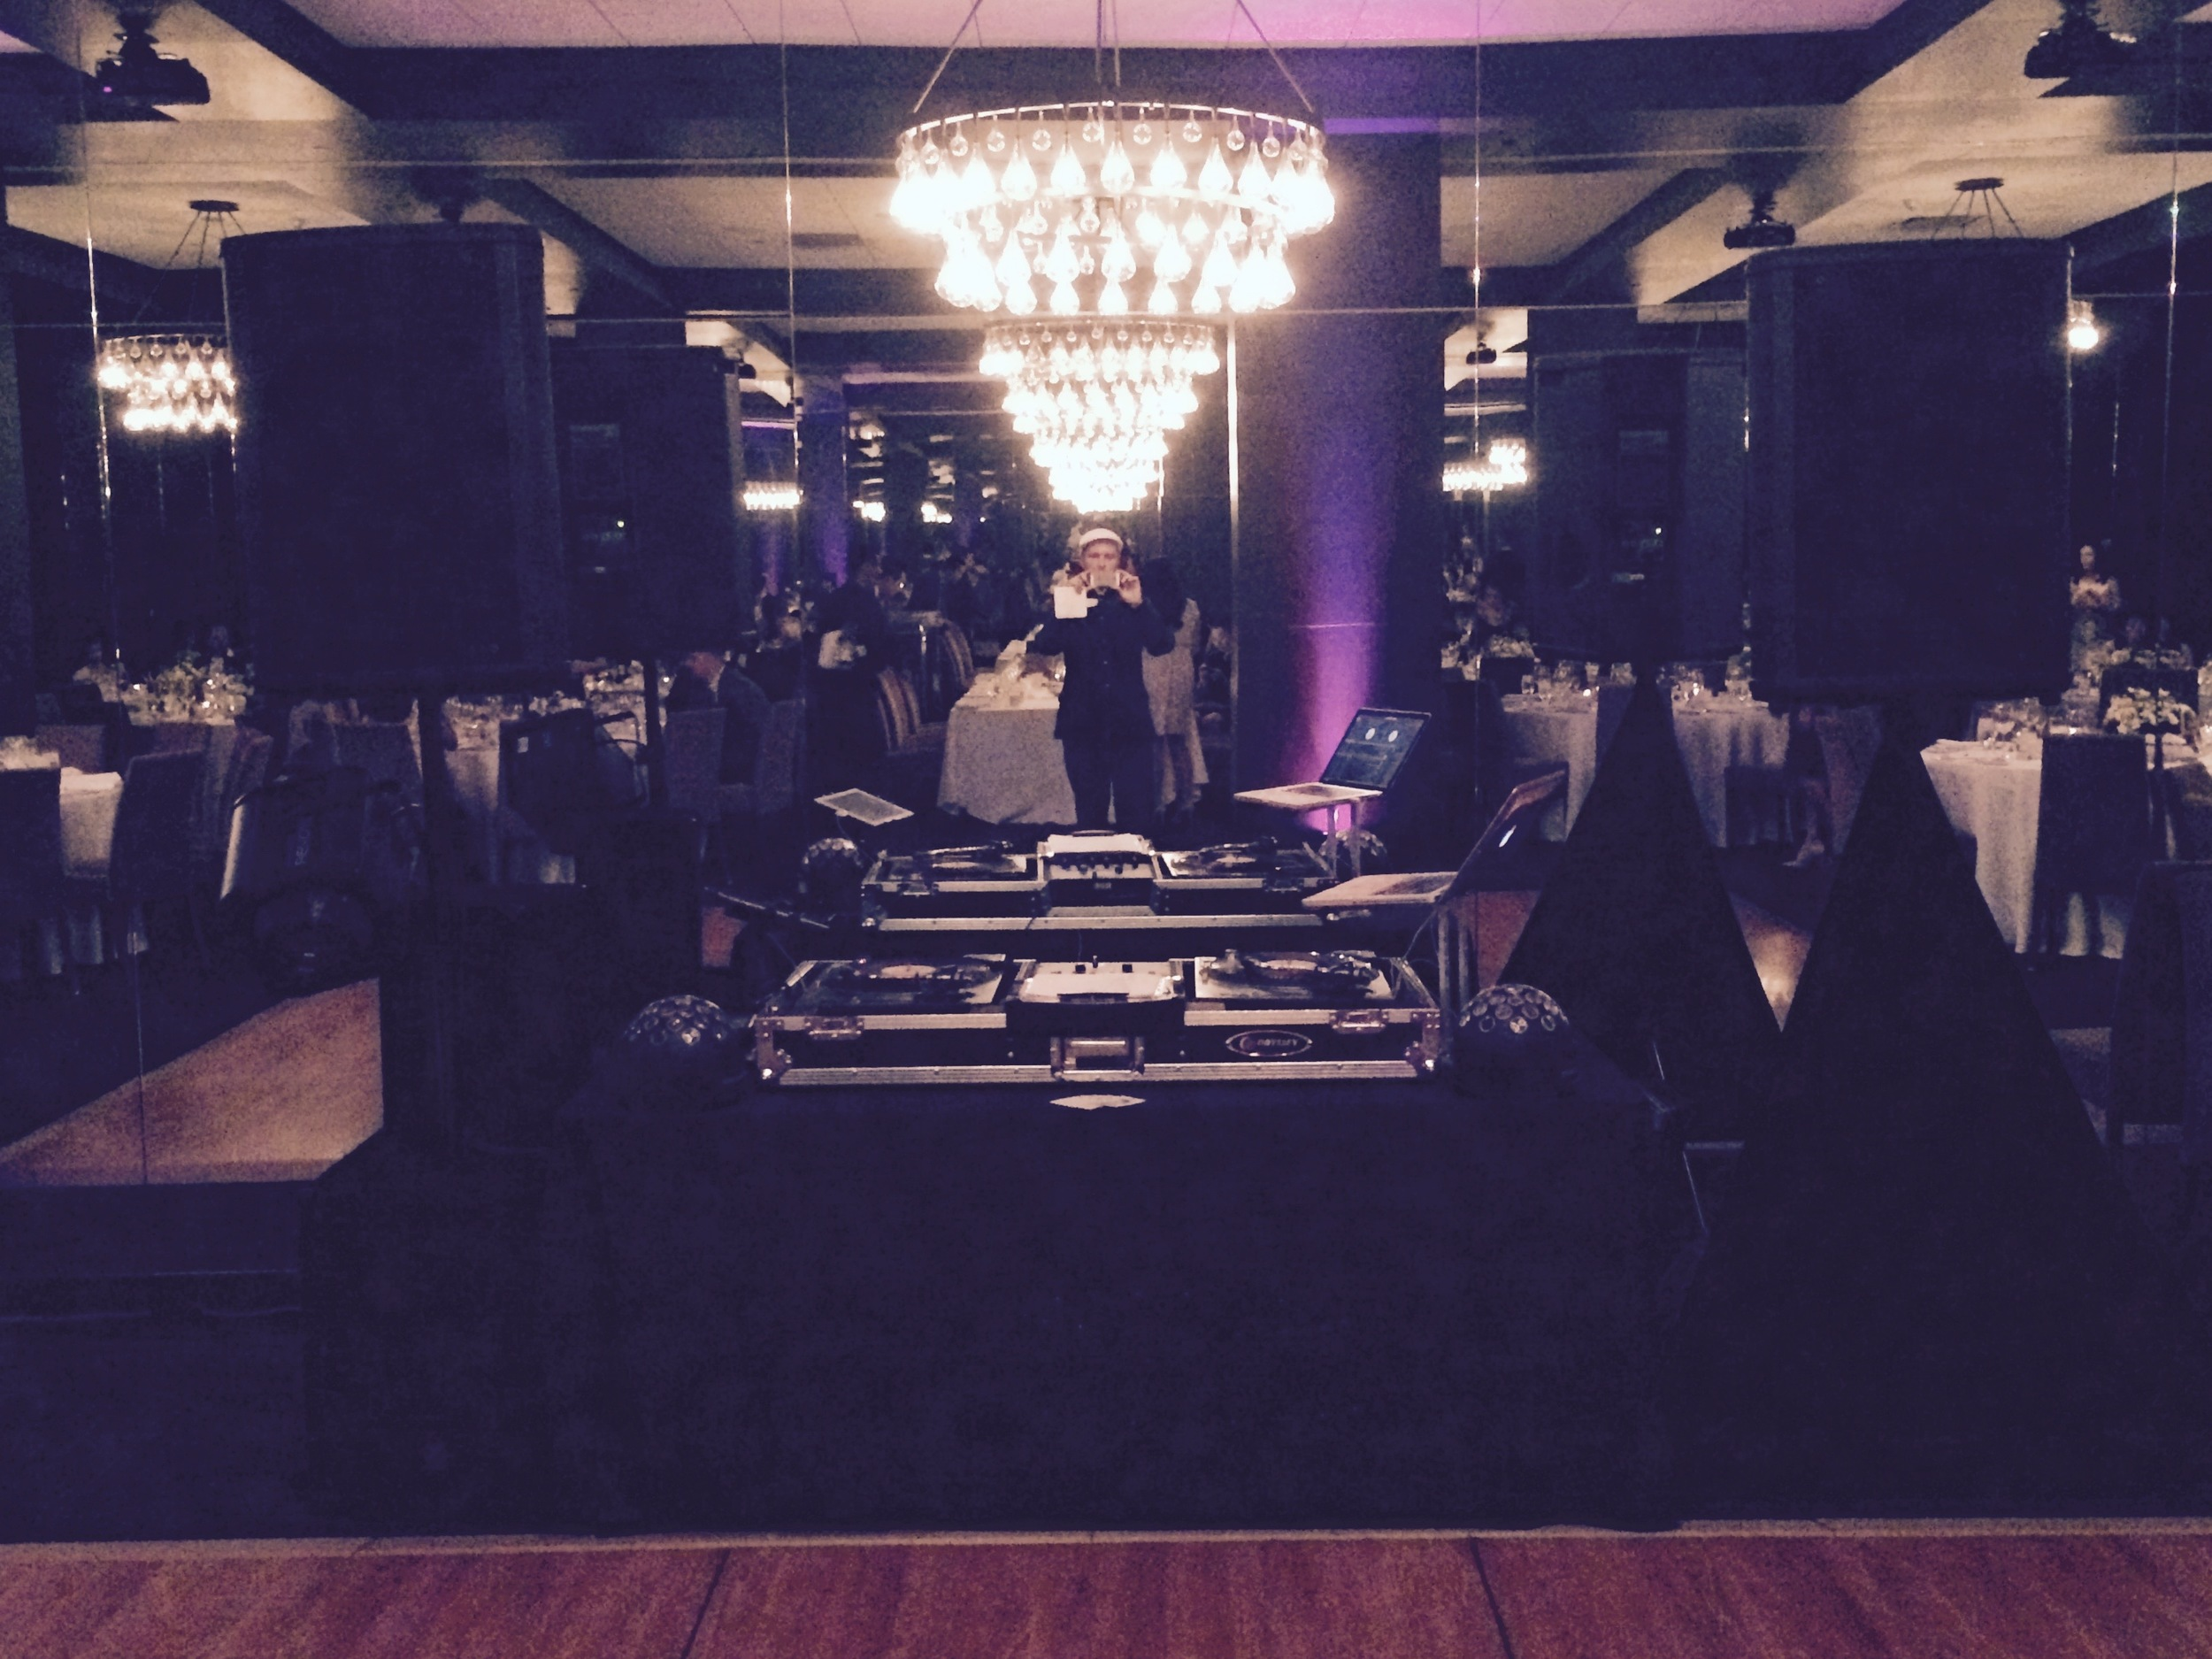 Dj Set Up @ The Thompson Hotel 2.jpg